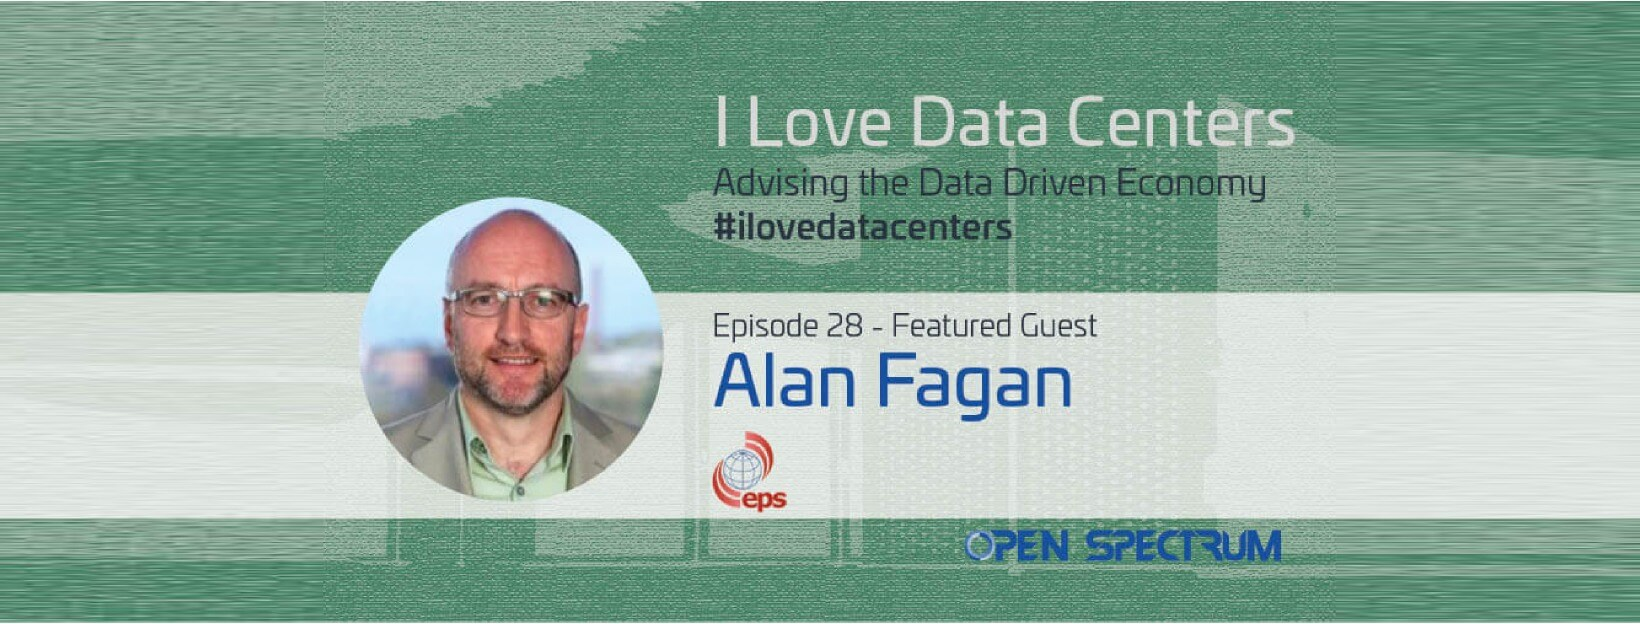 I Love Data Centers Podcast with EPS Global